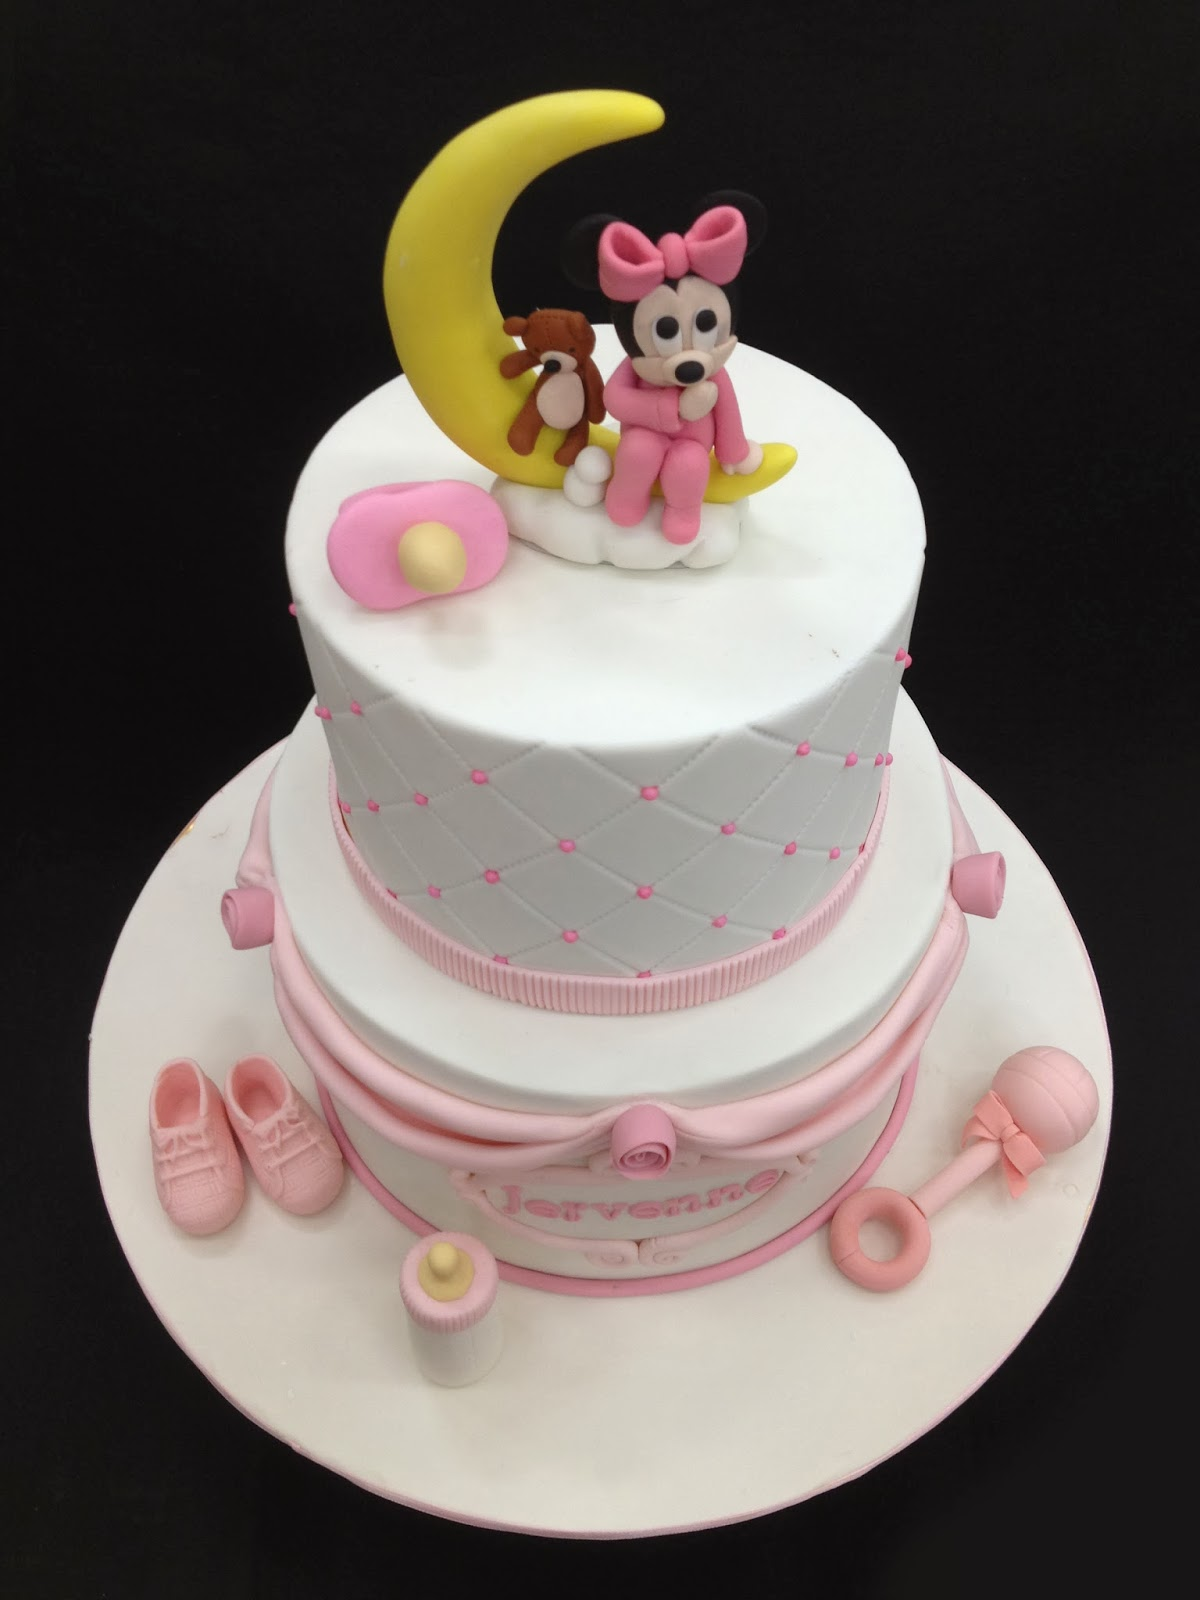 babycakes wedding cakes penang wedding cakes by leesin baby minnie baby cake 10999